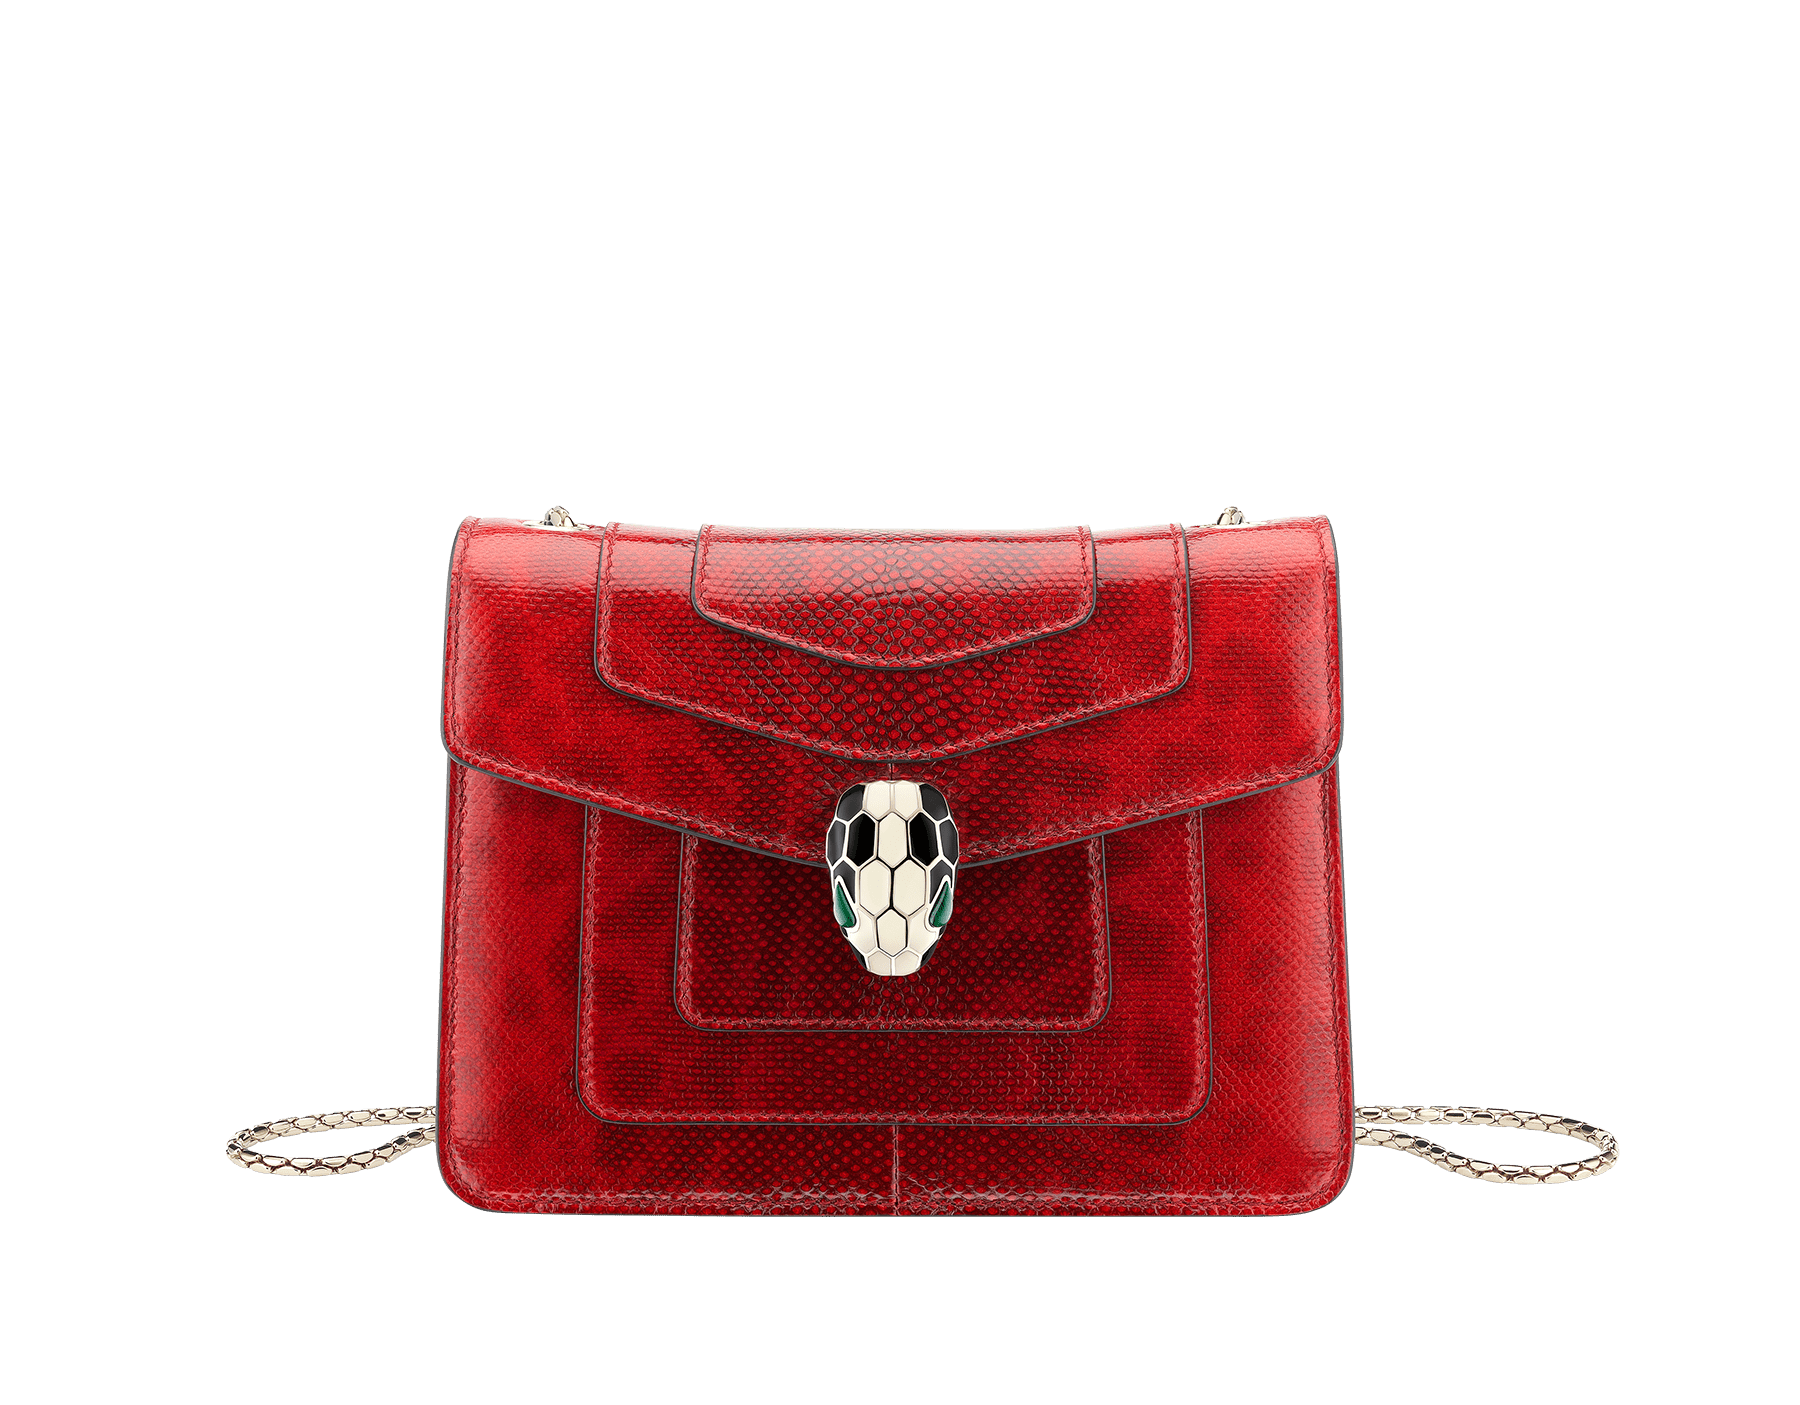 """Serpenti Forever "" crossbody bag in shiny carmine jasper karung skin. Iconic snakehead closure in light gold plated brass enriched with black and white enamel and green malachite eyes 287104 image 1"